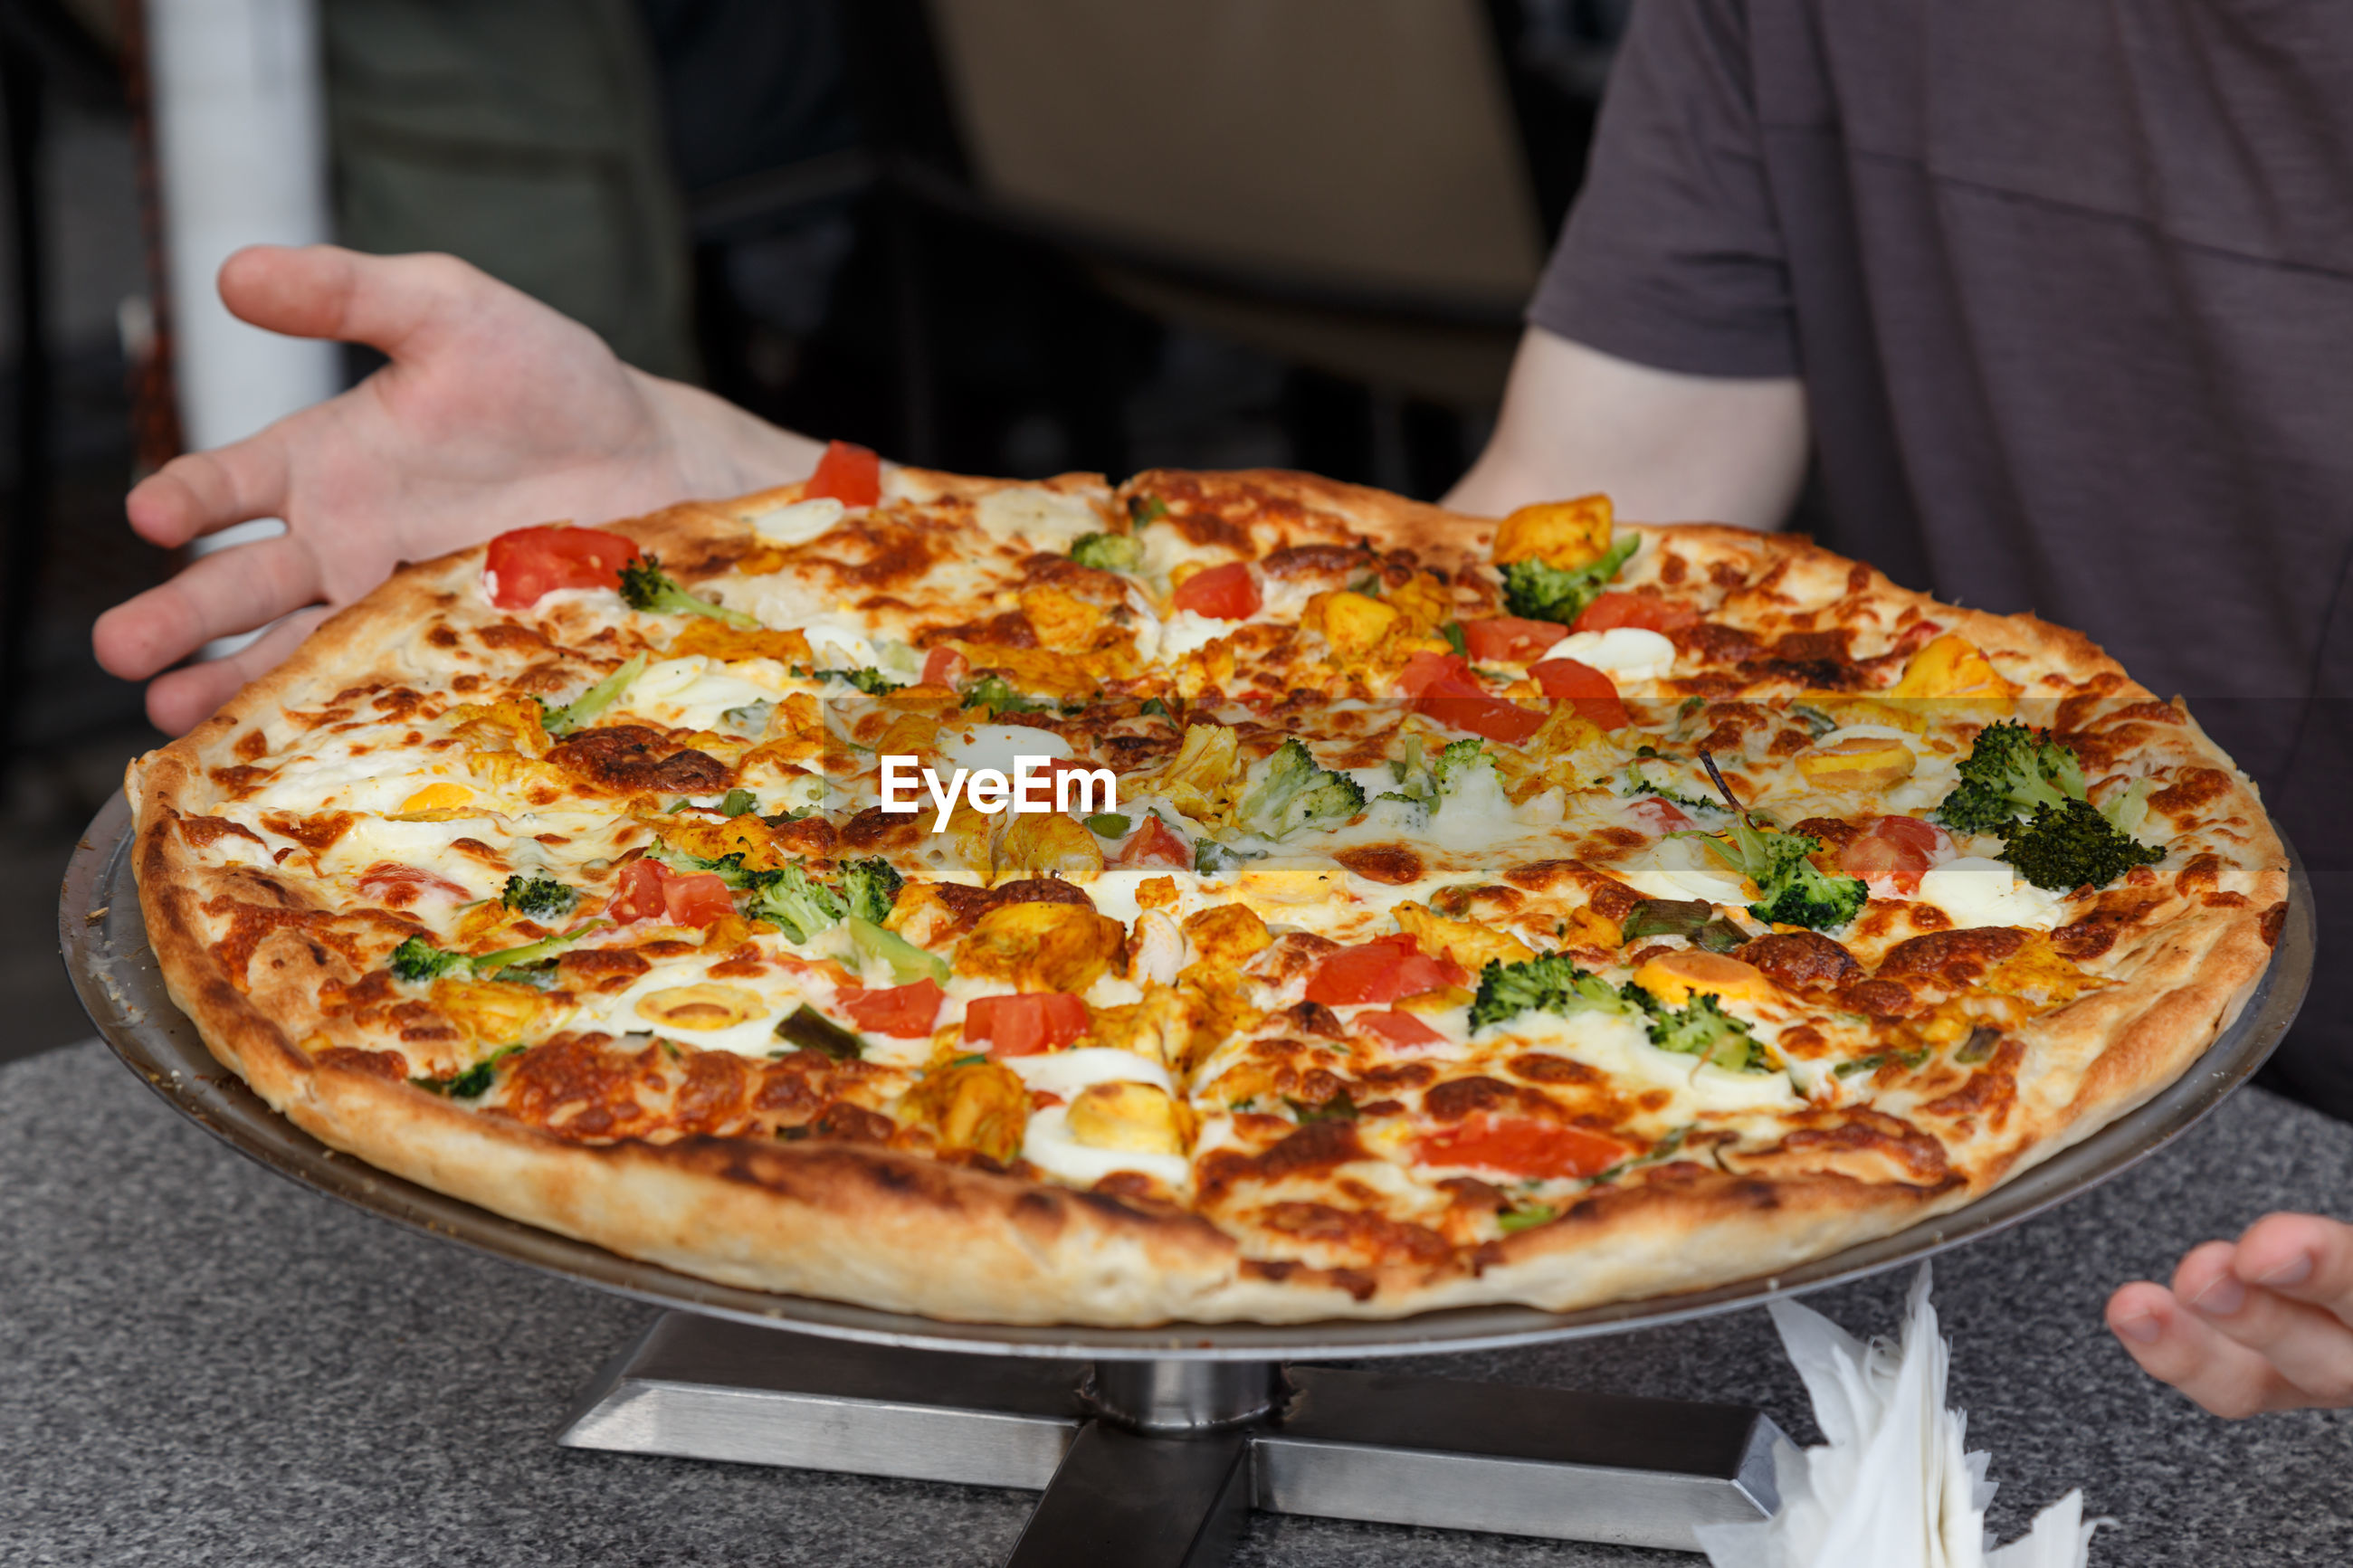 Midsection of man eating pizza